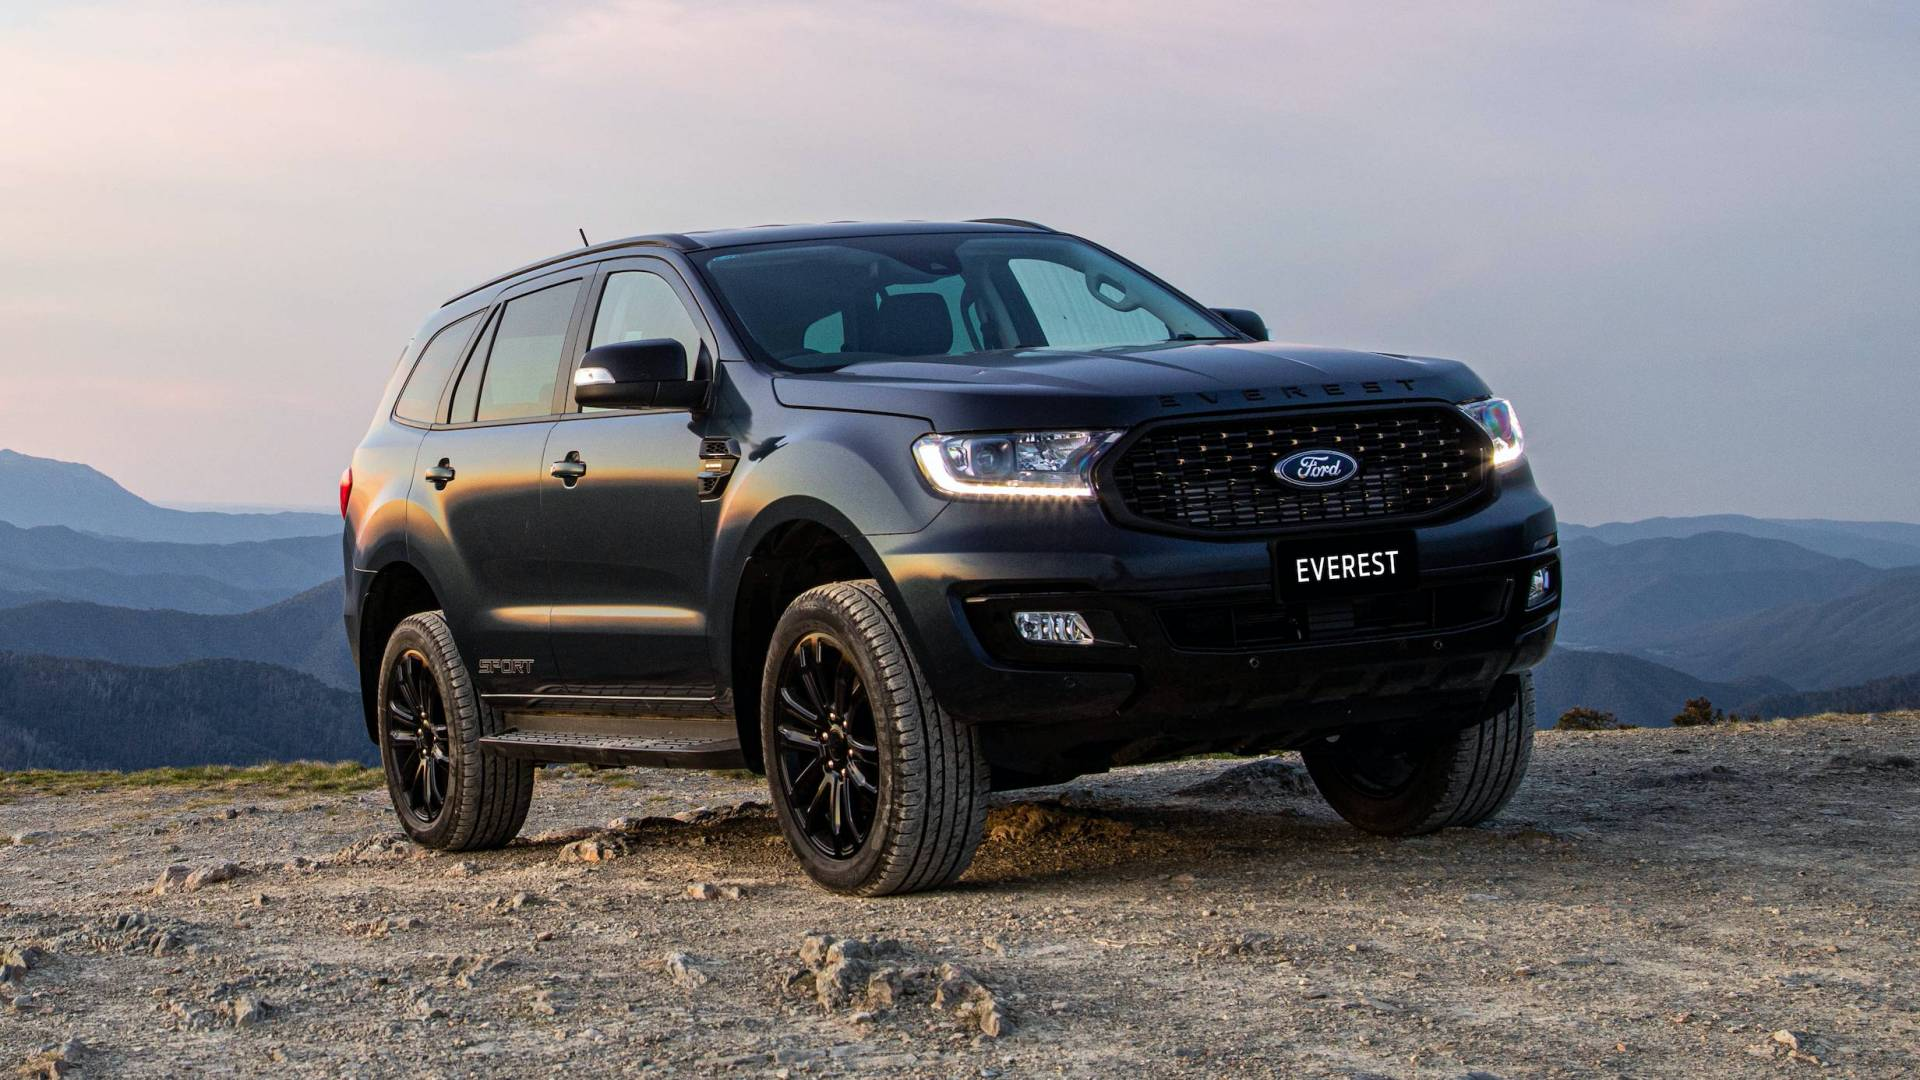 2020-ford-everest-sport-australia-spec-8.jpg